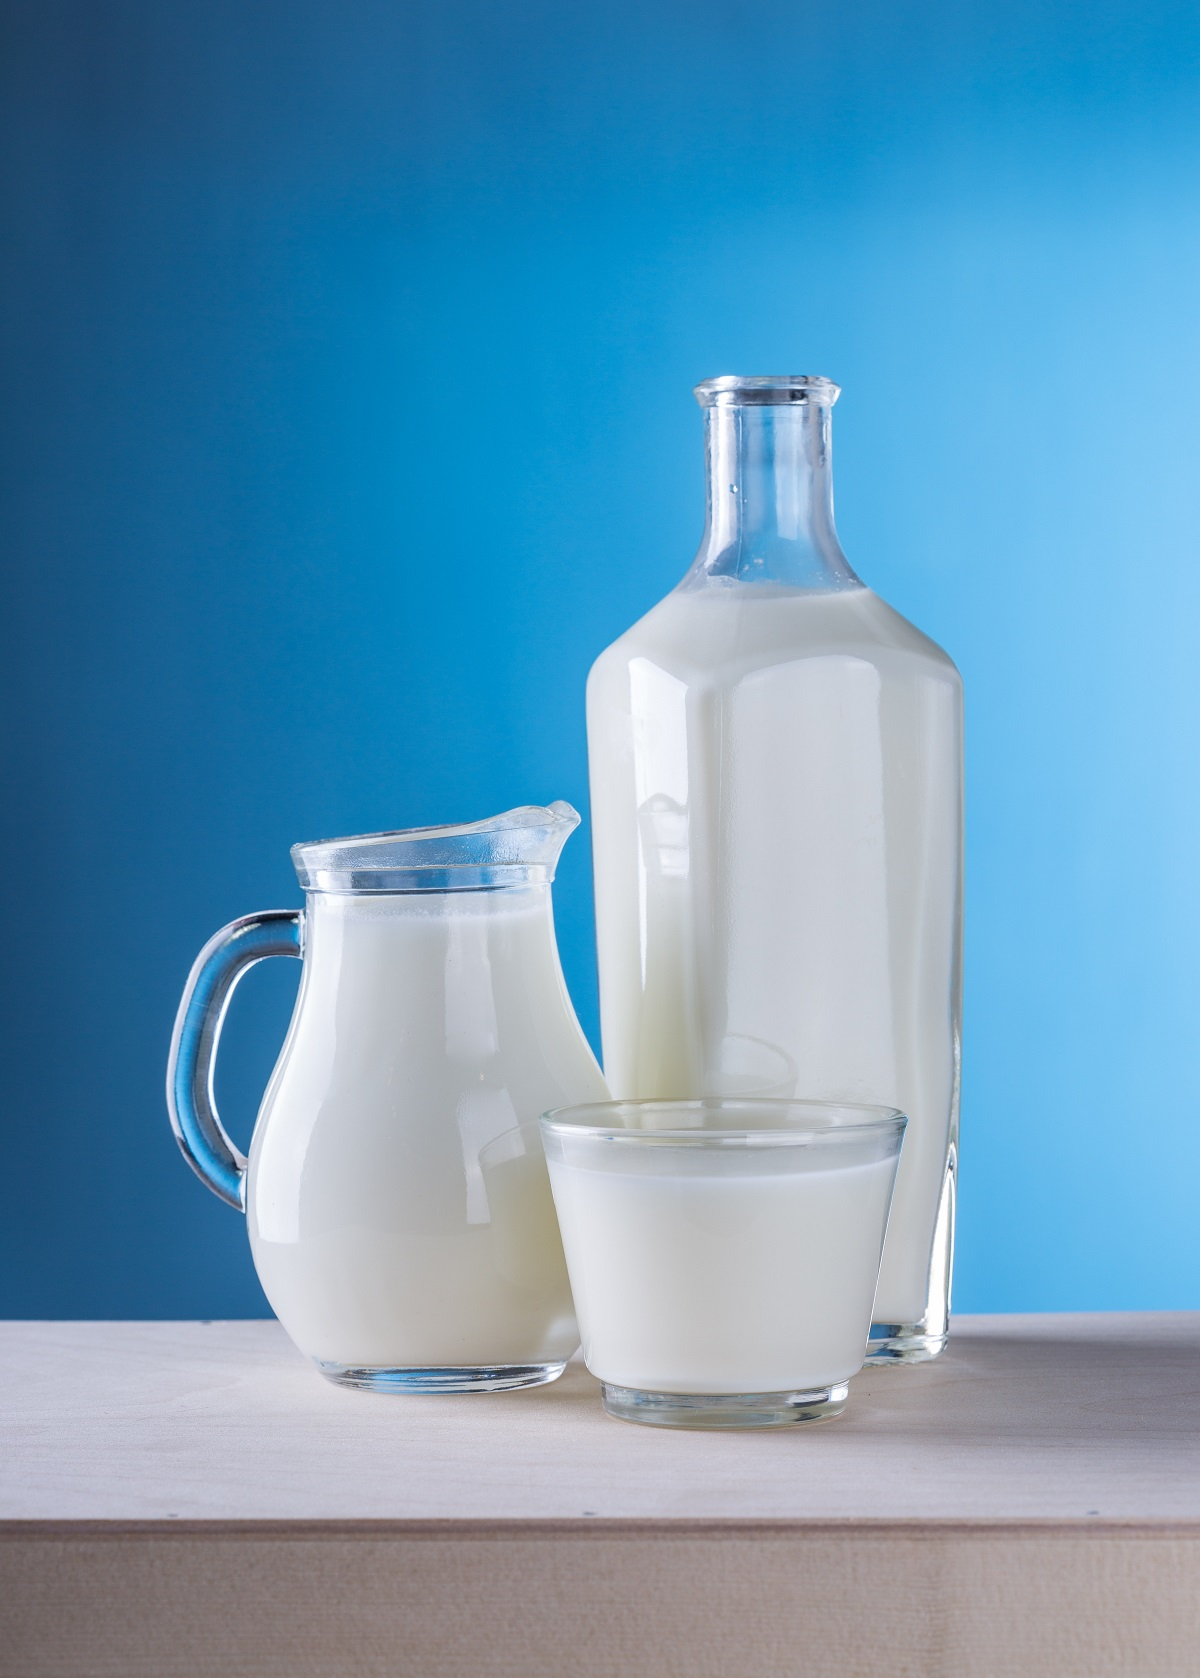 close-up-of-milk-against-blue-background-248412.jpg